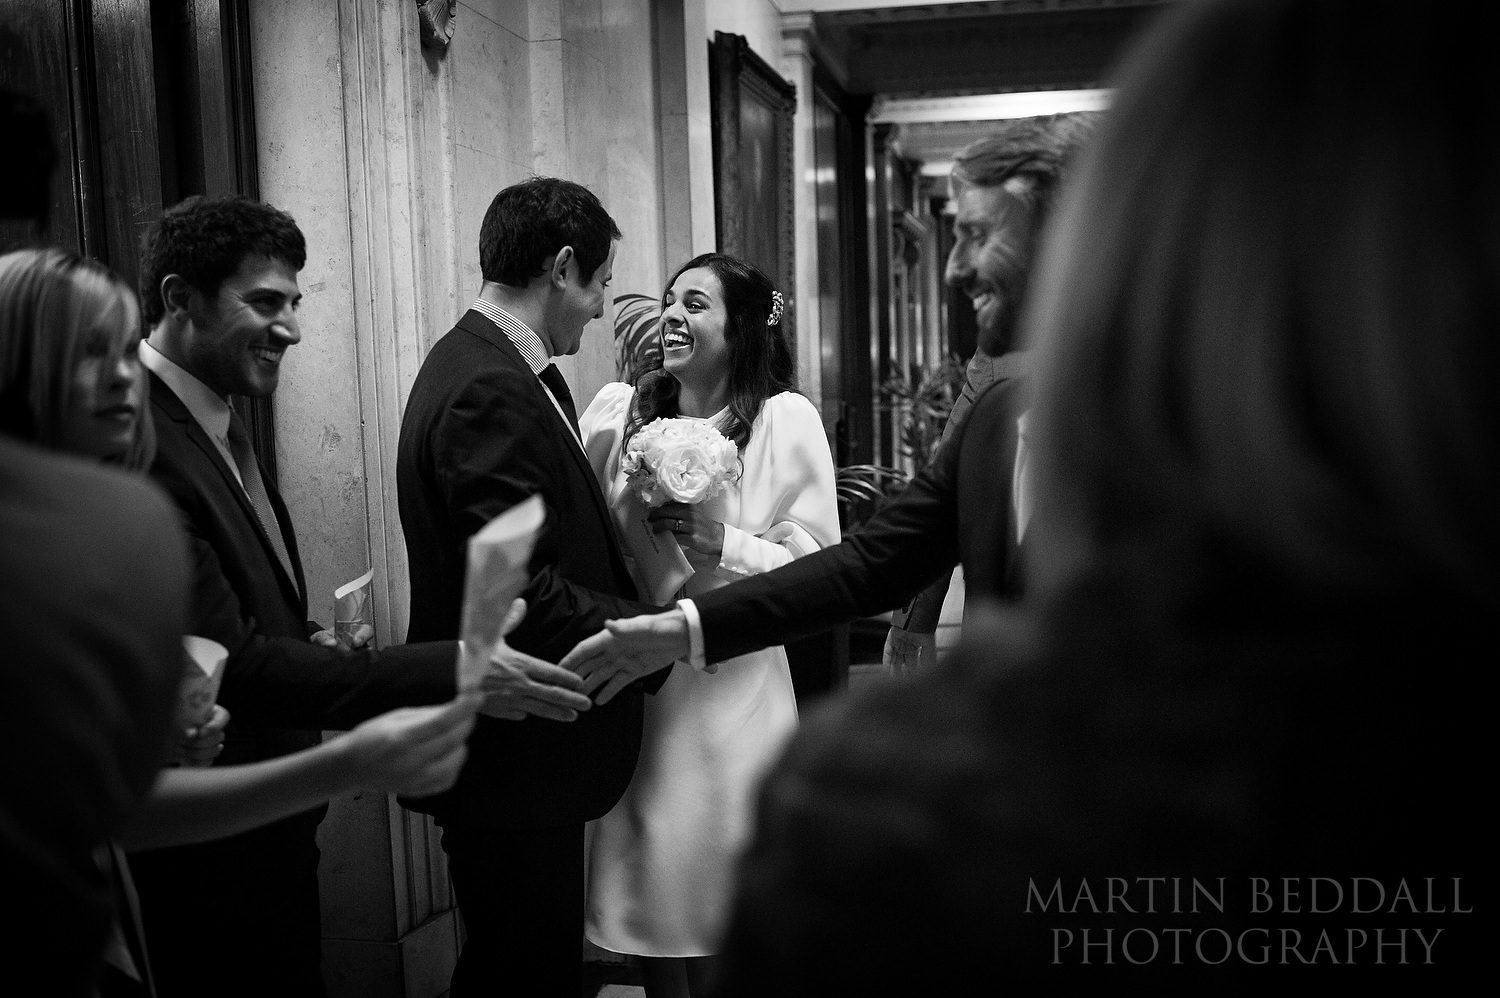 Greeting wedding guests after the wedding ceremony